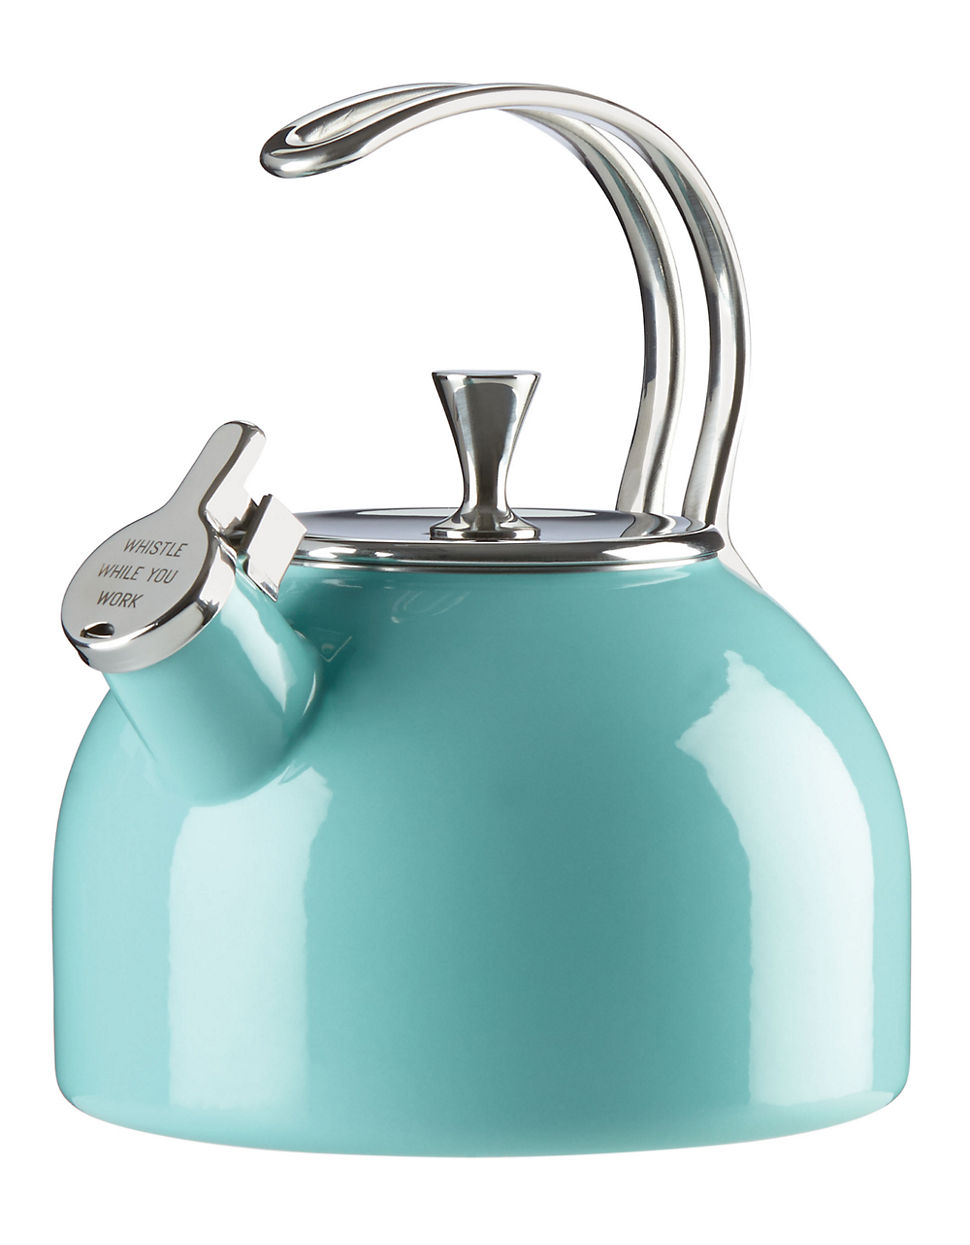 stovetop kettles  kettles  coffee  tea  kitchen  home  - whistling tea kettle